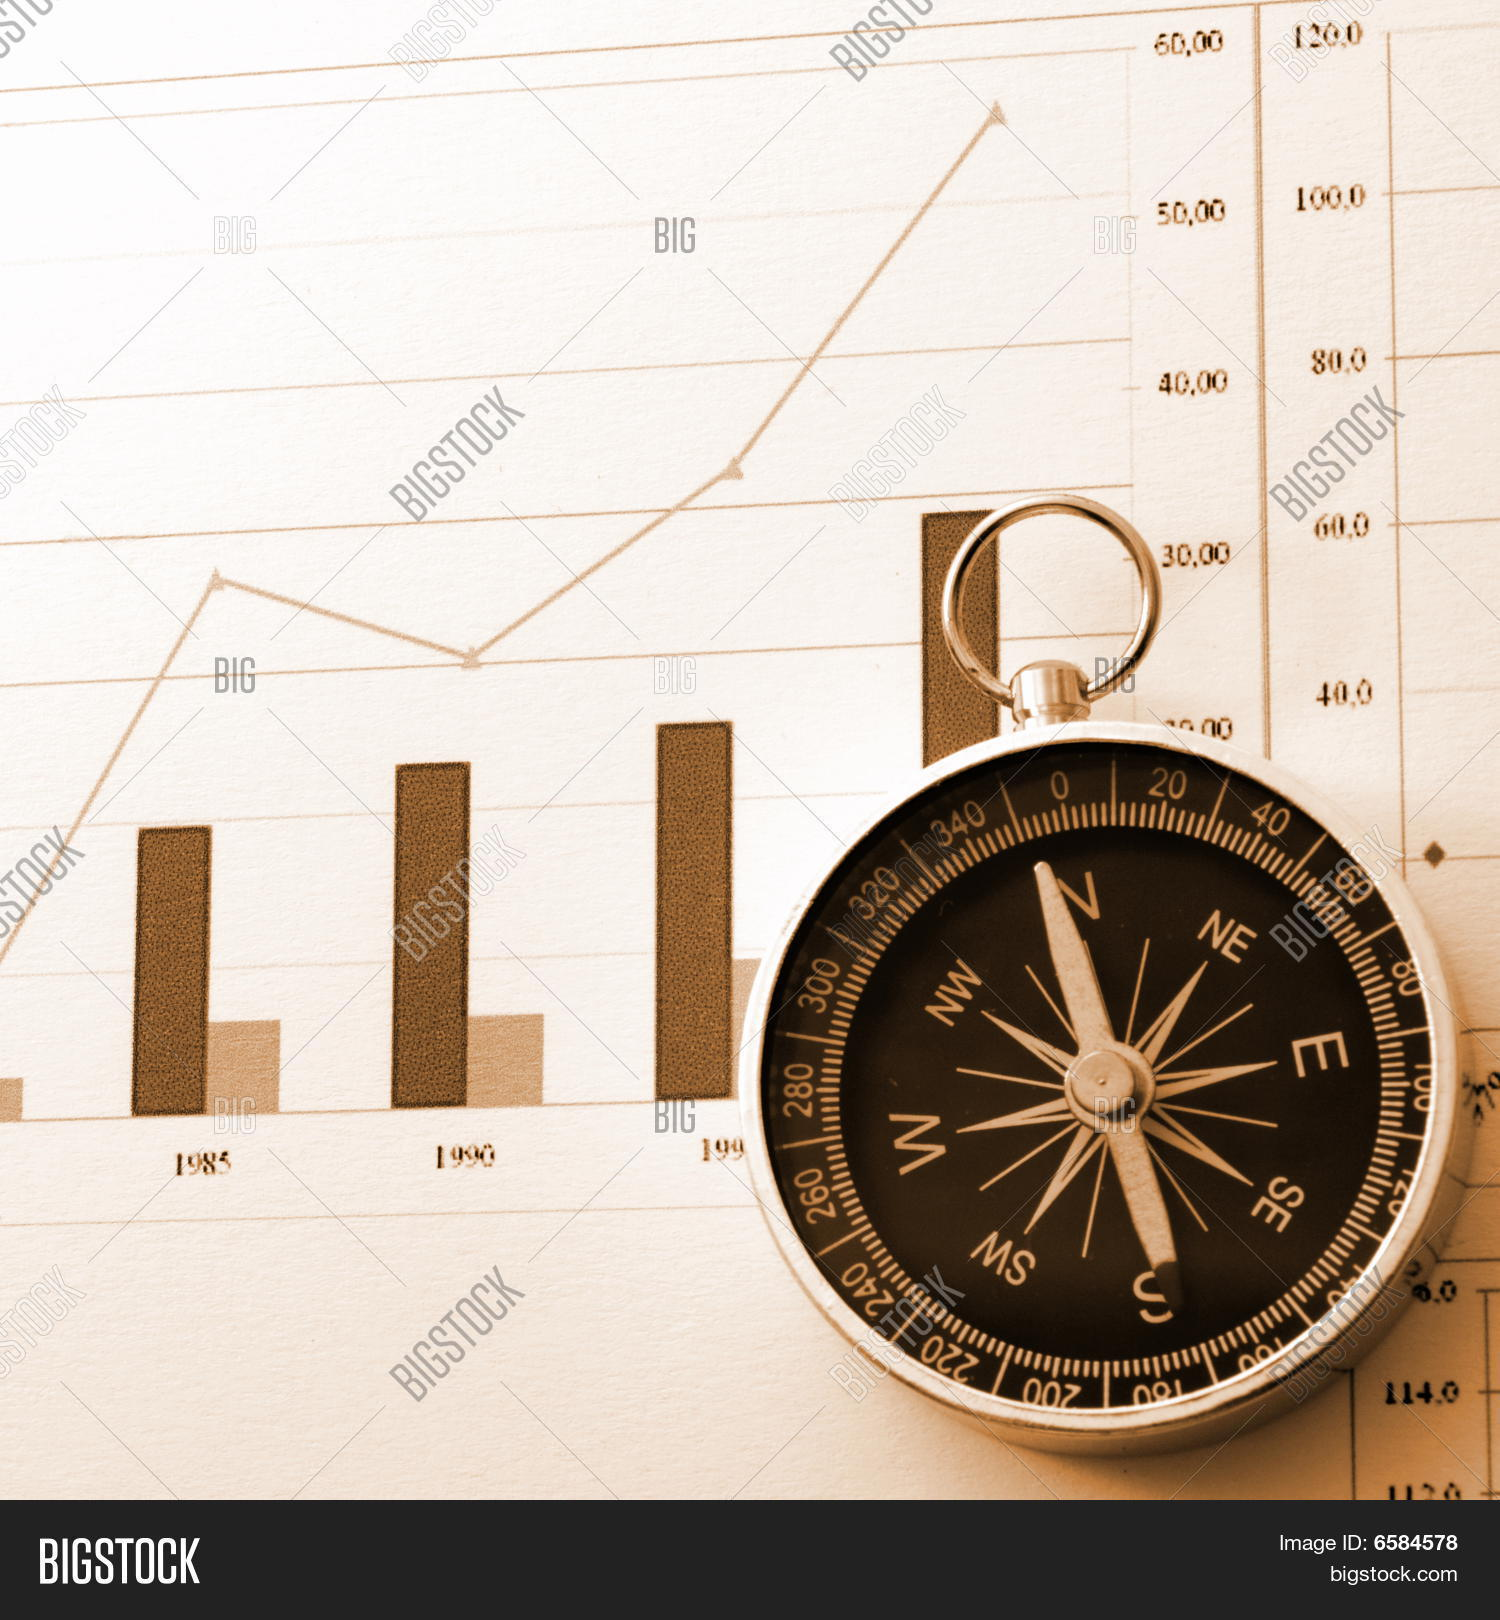 Business compass image photo bigstock business compass pooptronica